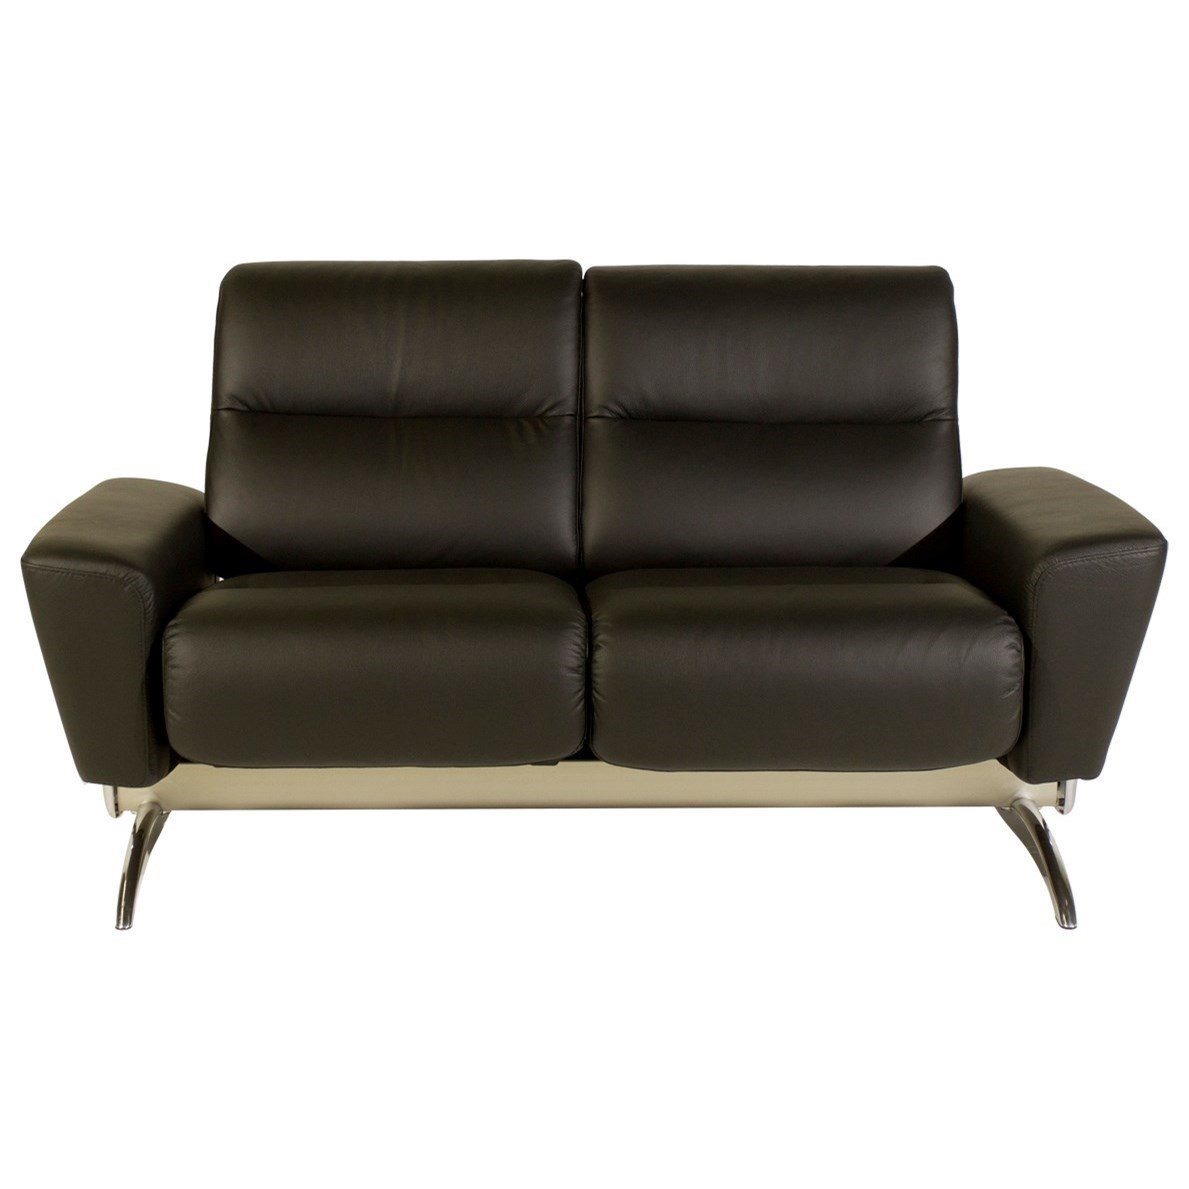 2 seater love chair office support stressless you 1501020 julia loveseat with youjulia